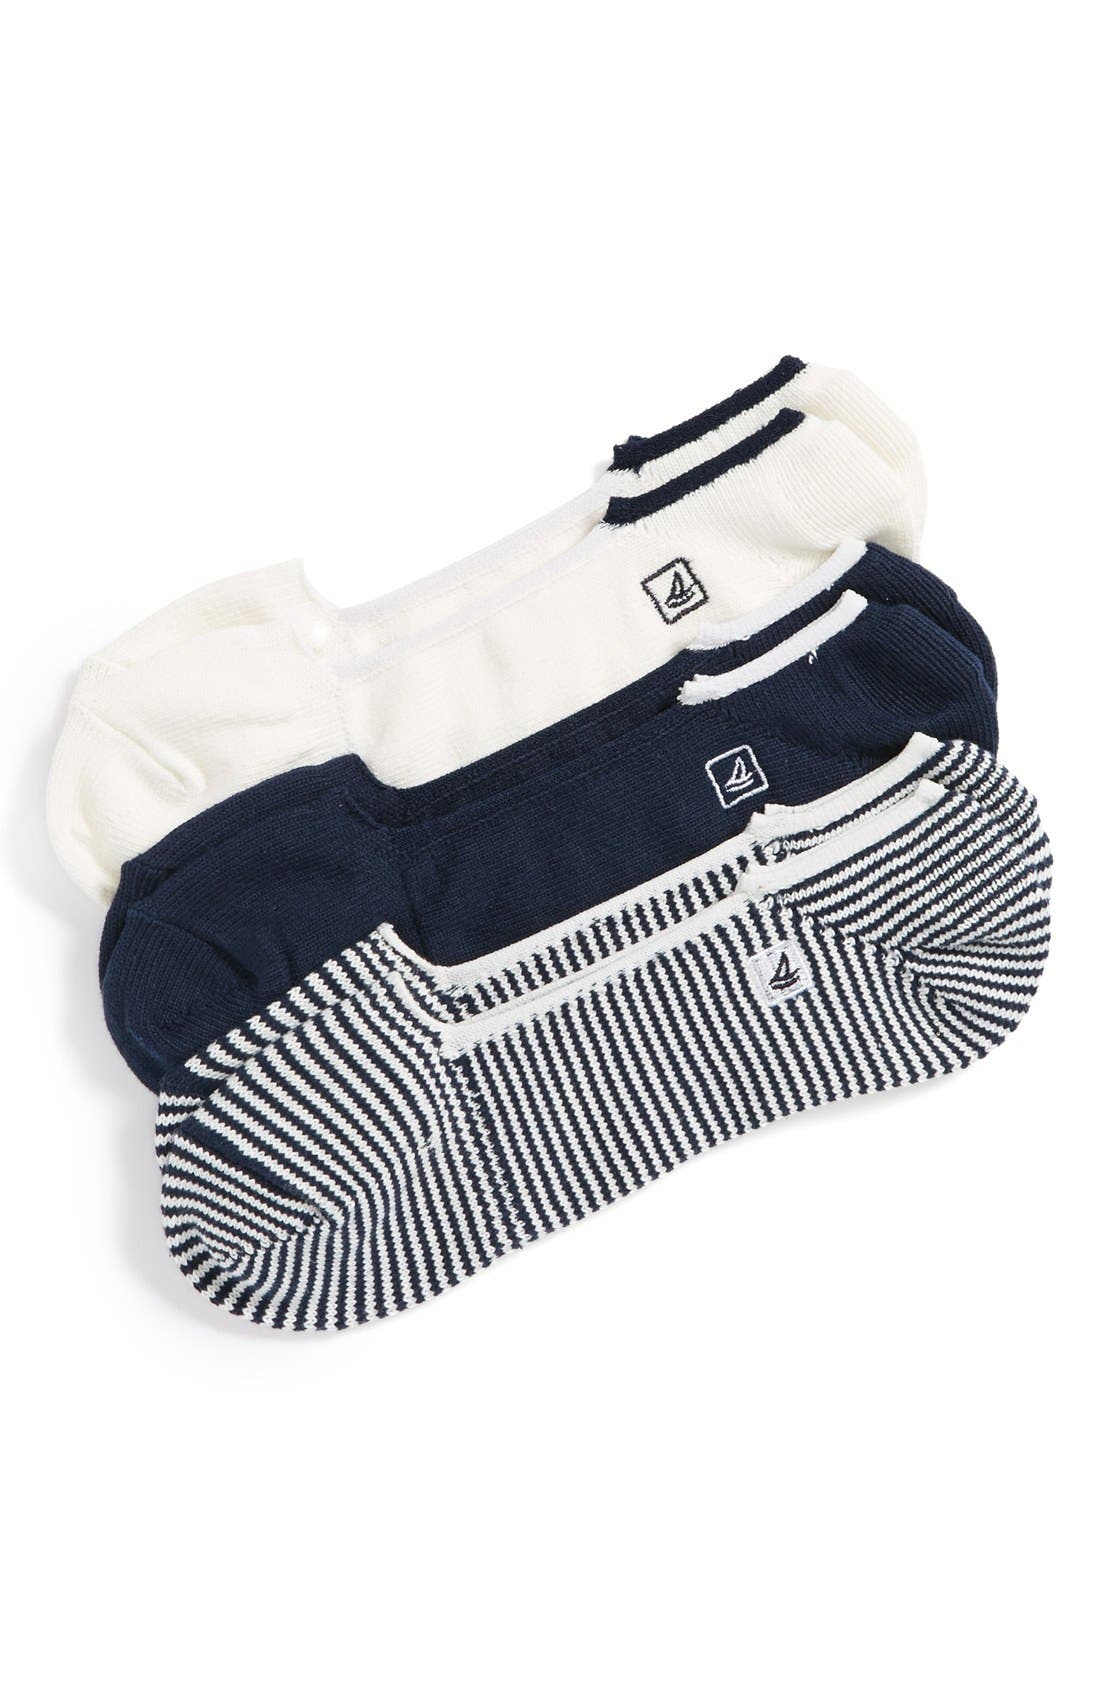 Skimmers Feed Assorted 3-Pack Socks,                             Main thumbnail 1, color,                             Navy/ White